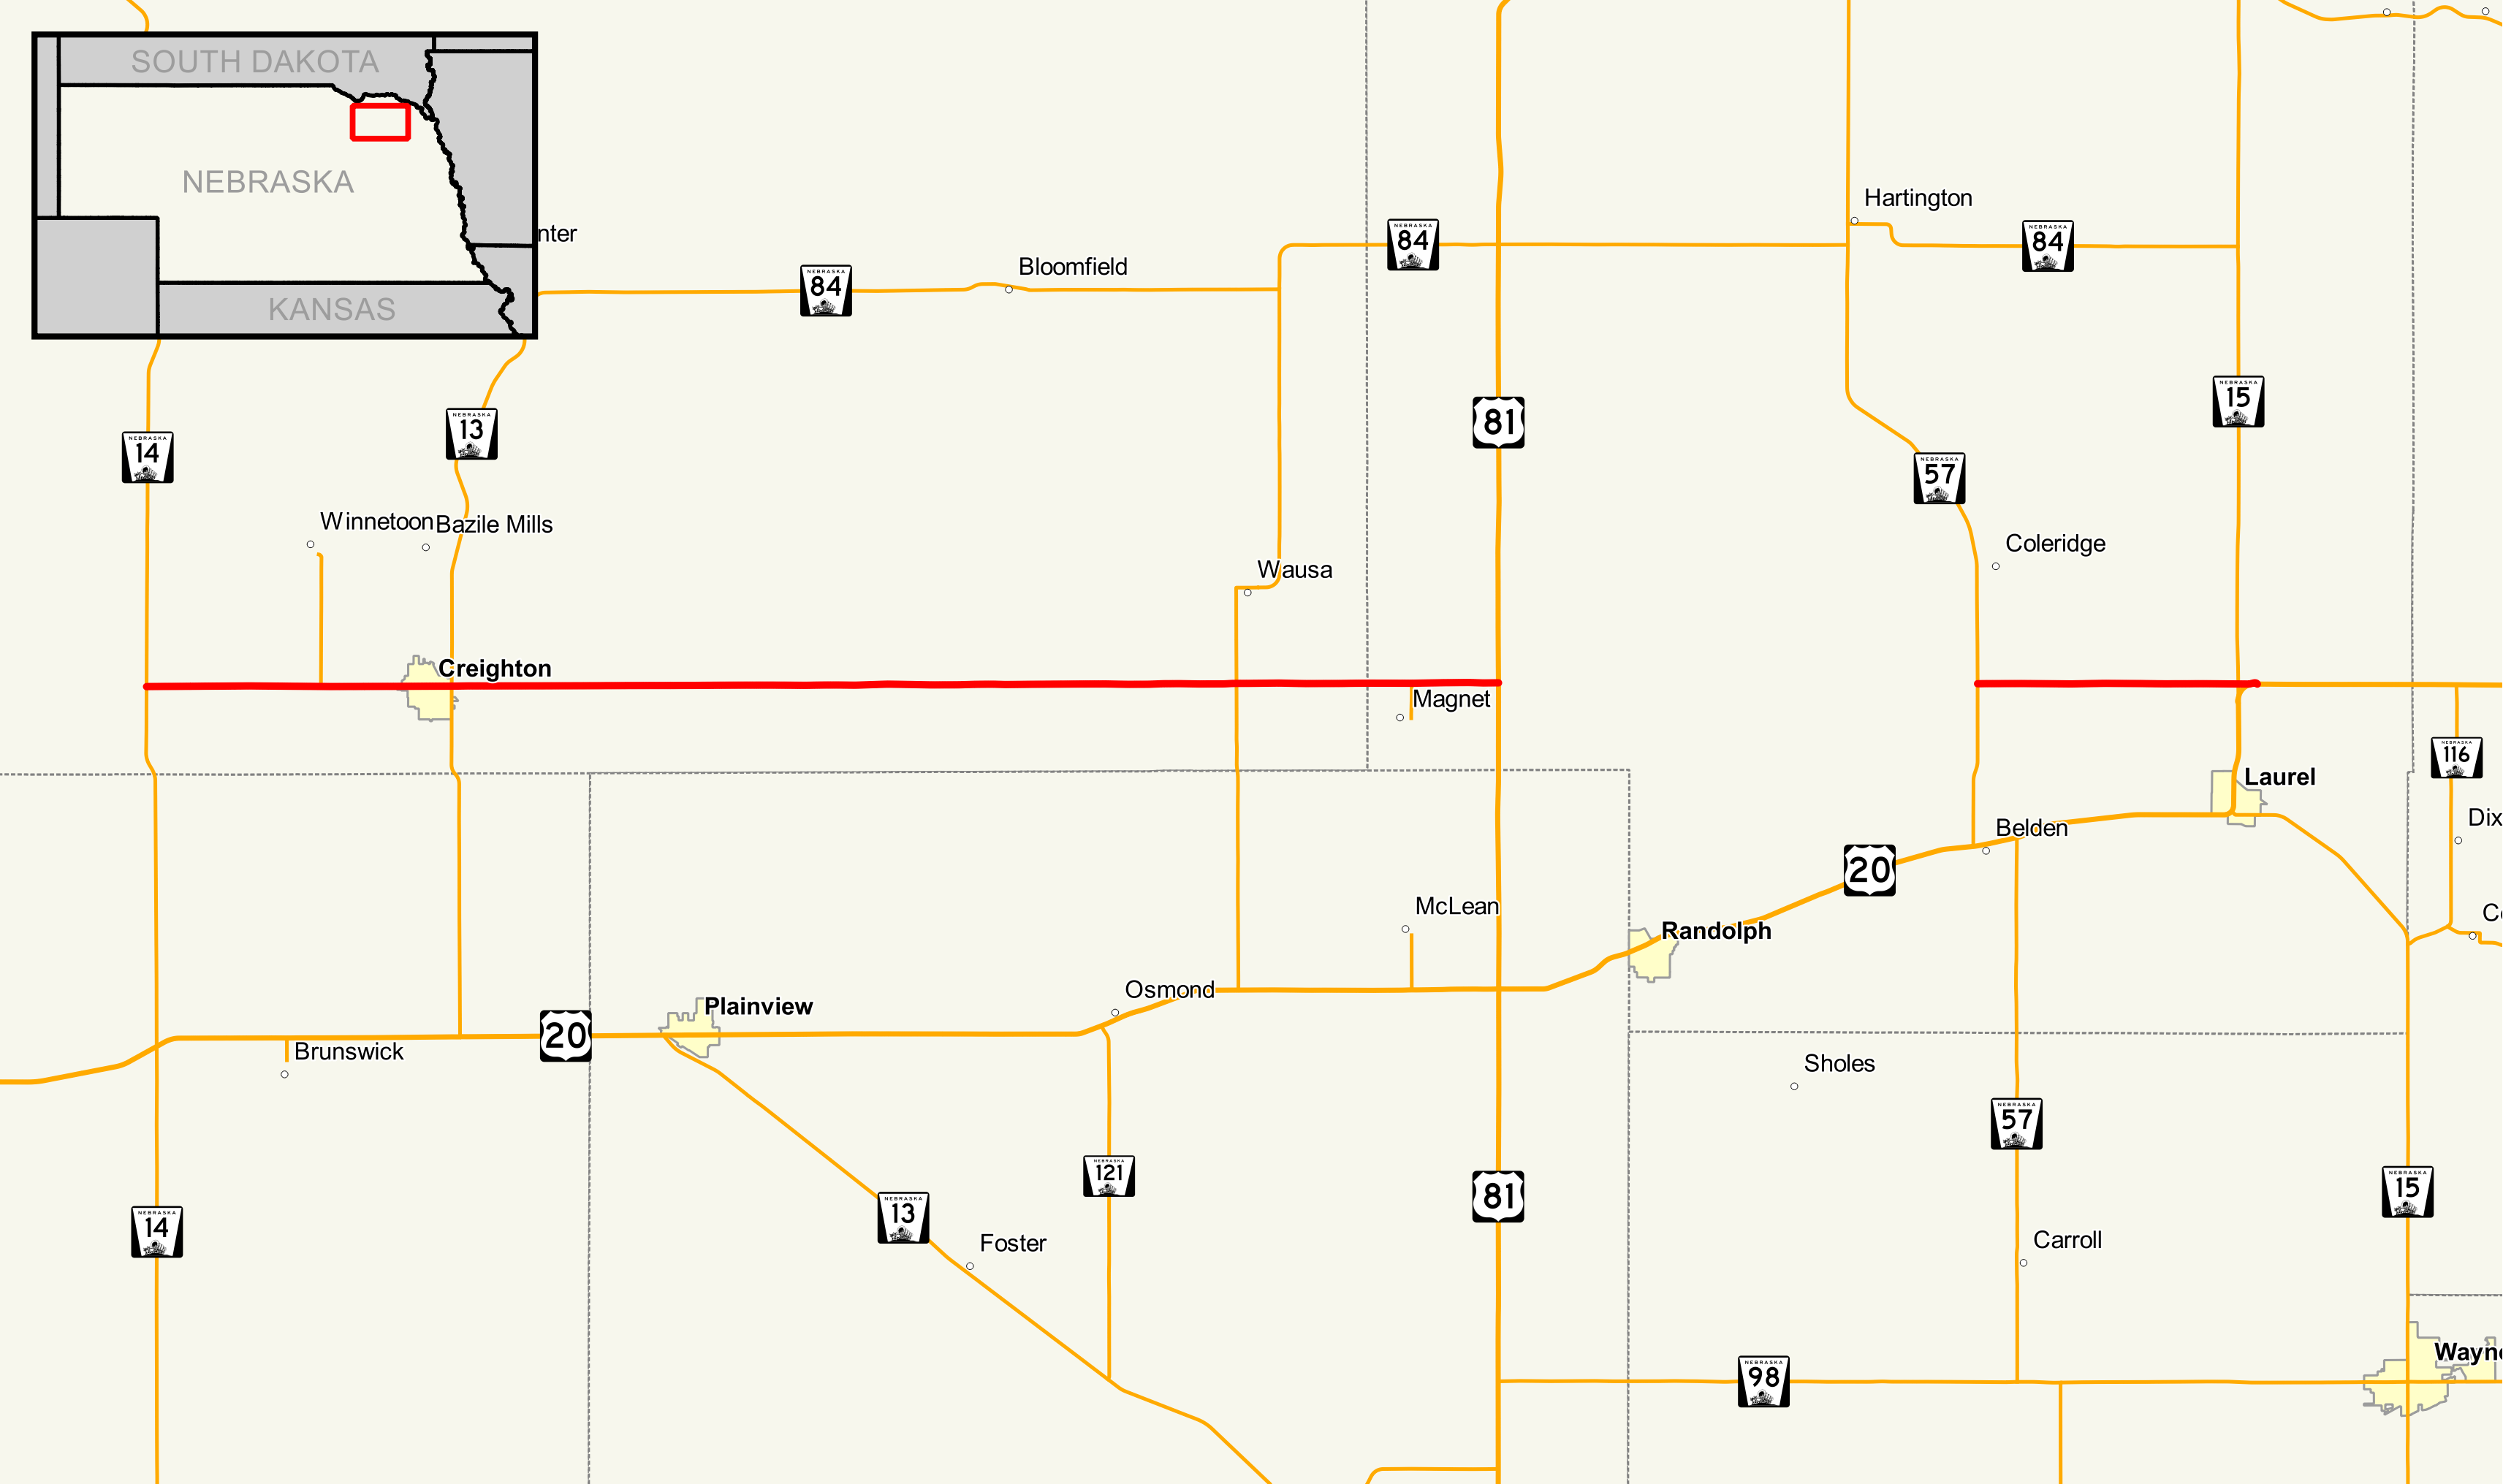 nebraska highway 59 - wikipedia